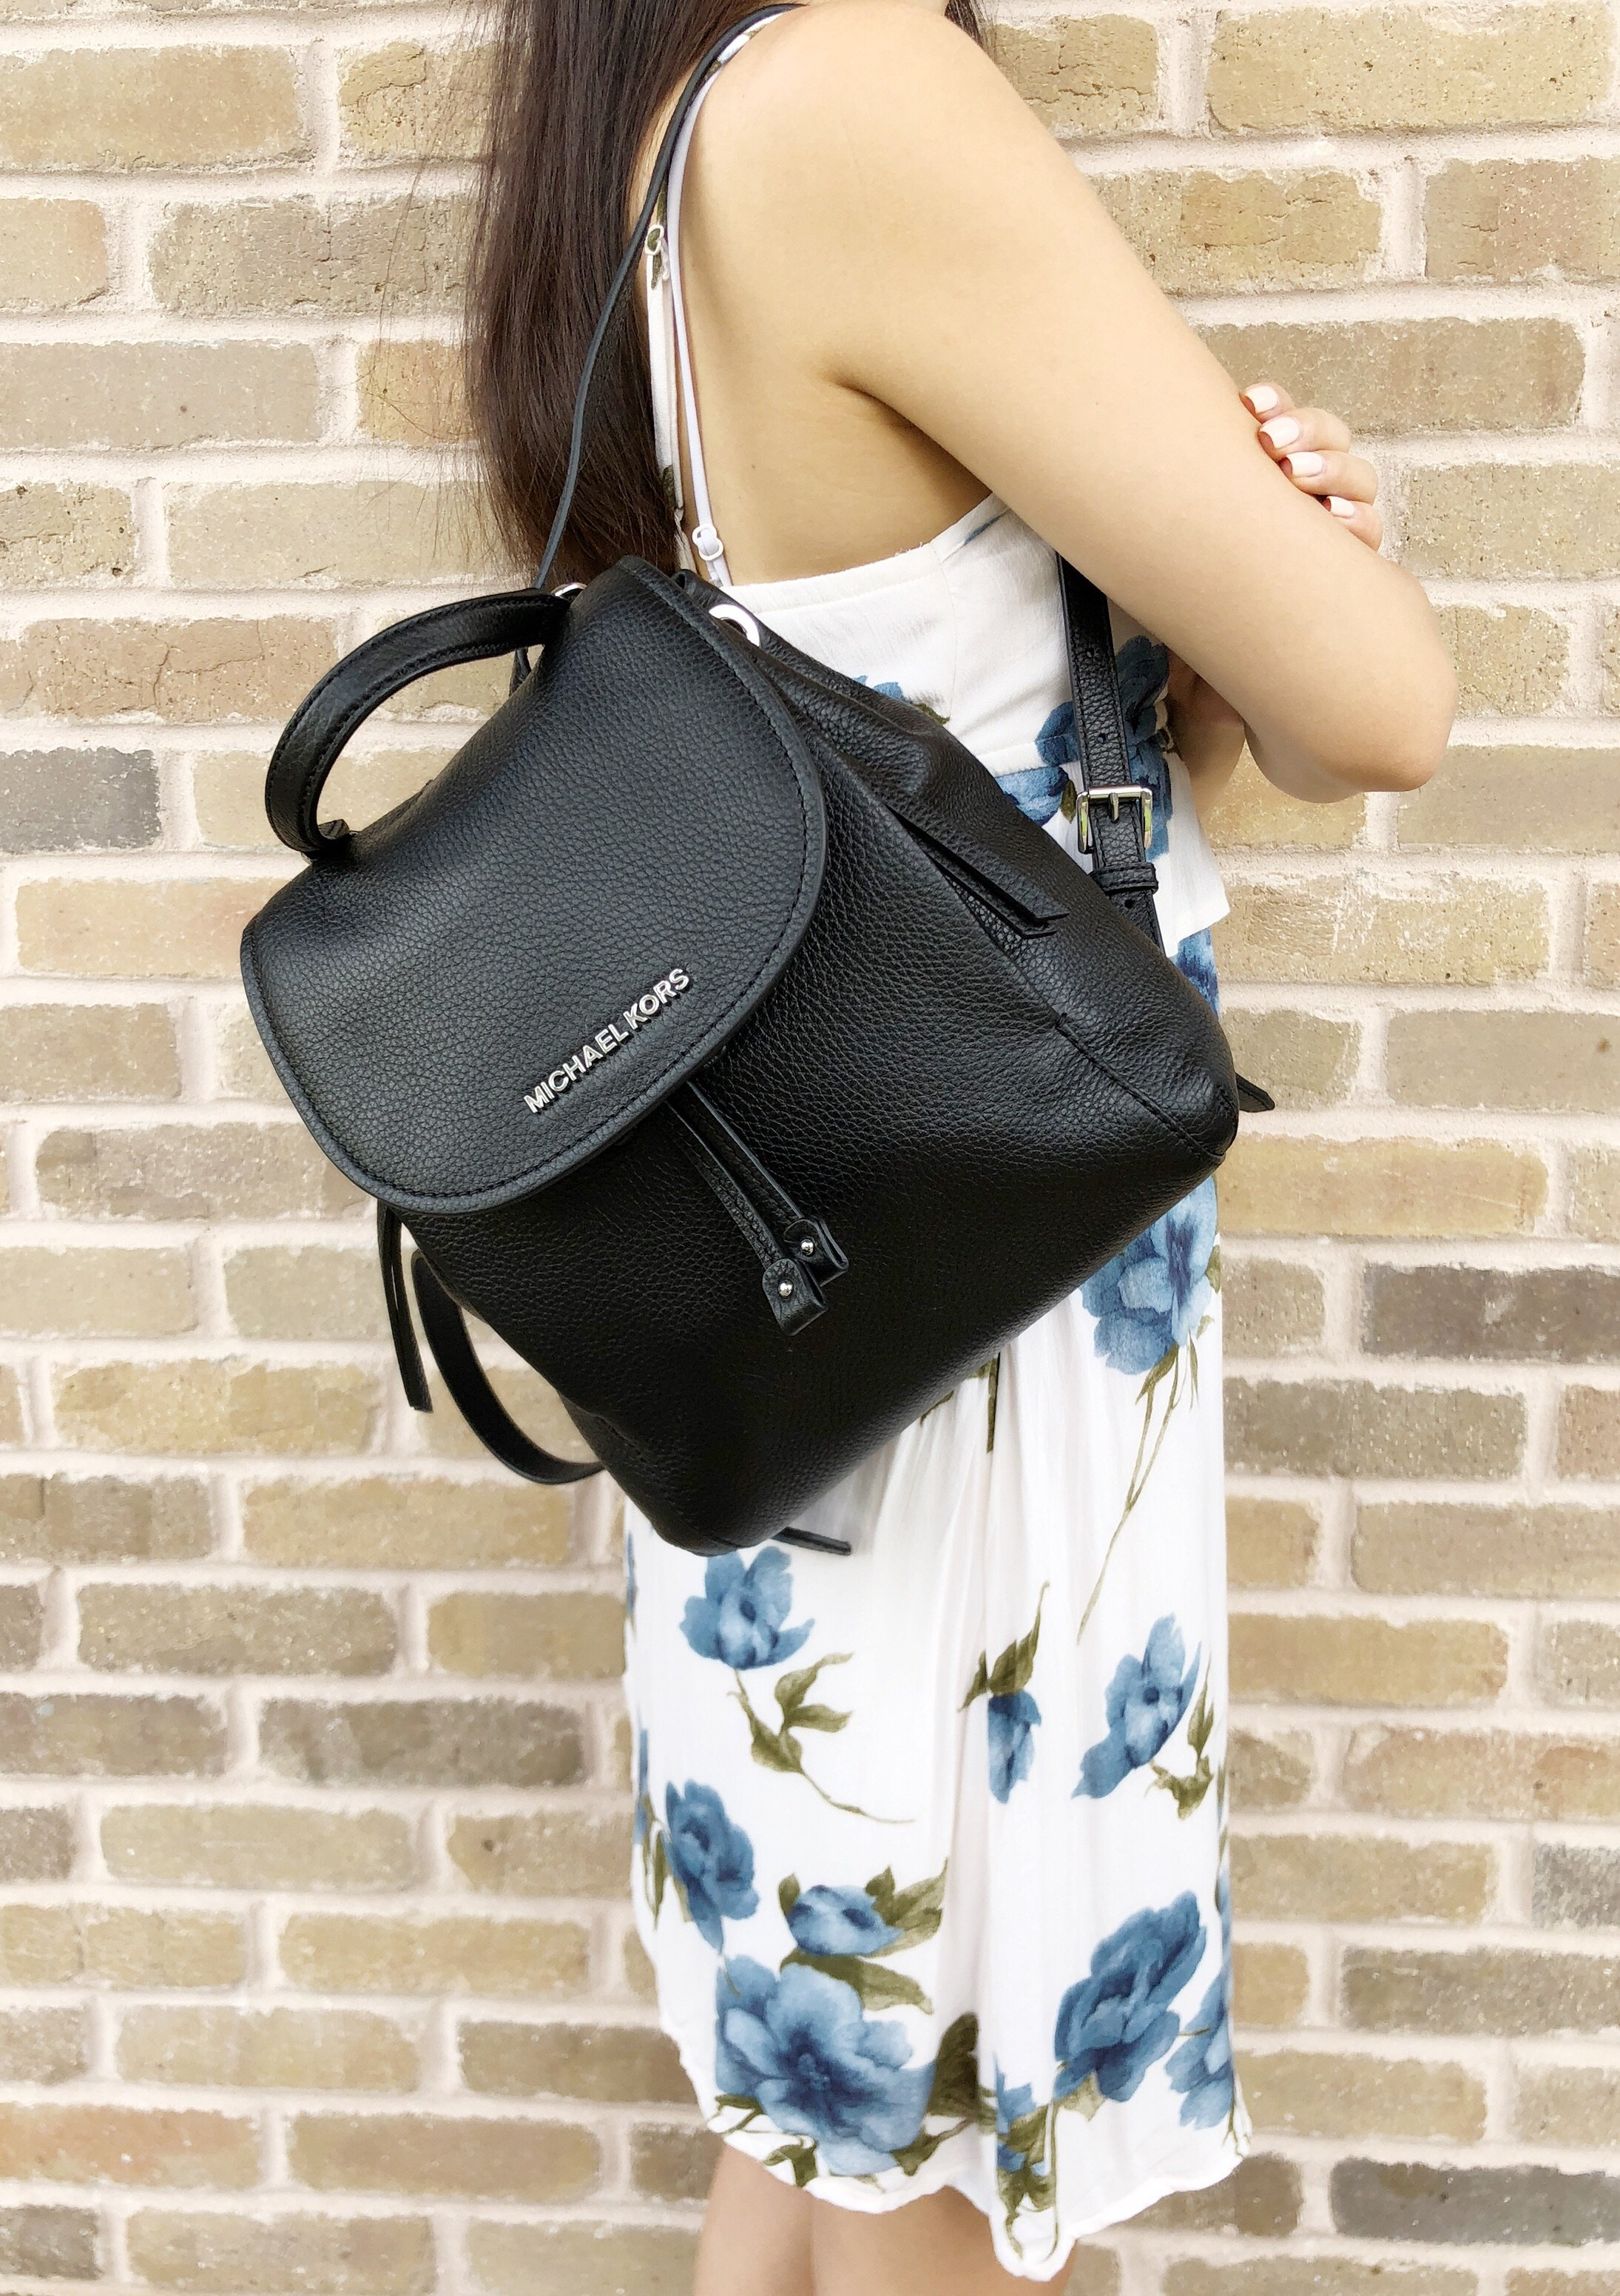 994008a9db61 Michael Kors - Michael Kors Riley Medium Backpack Black Pebbled Leather  Drawstring Flap Bag - Walmart.com